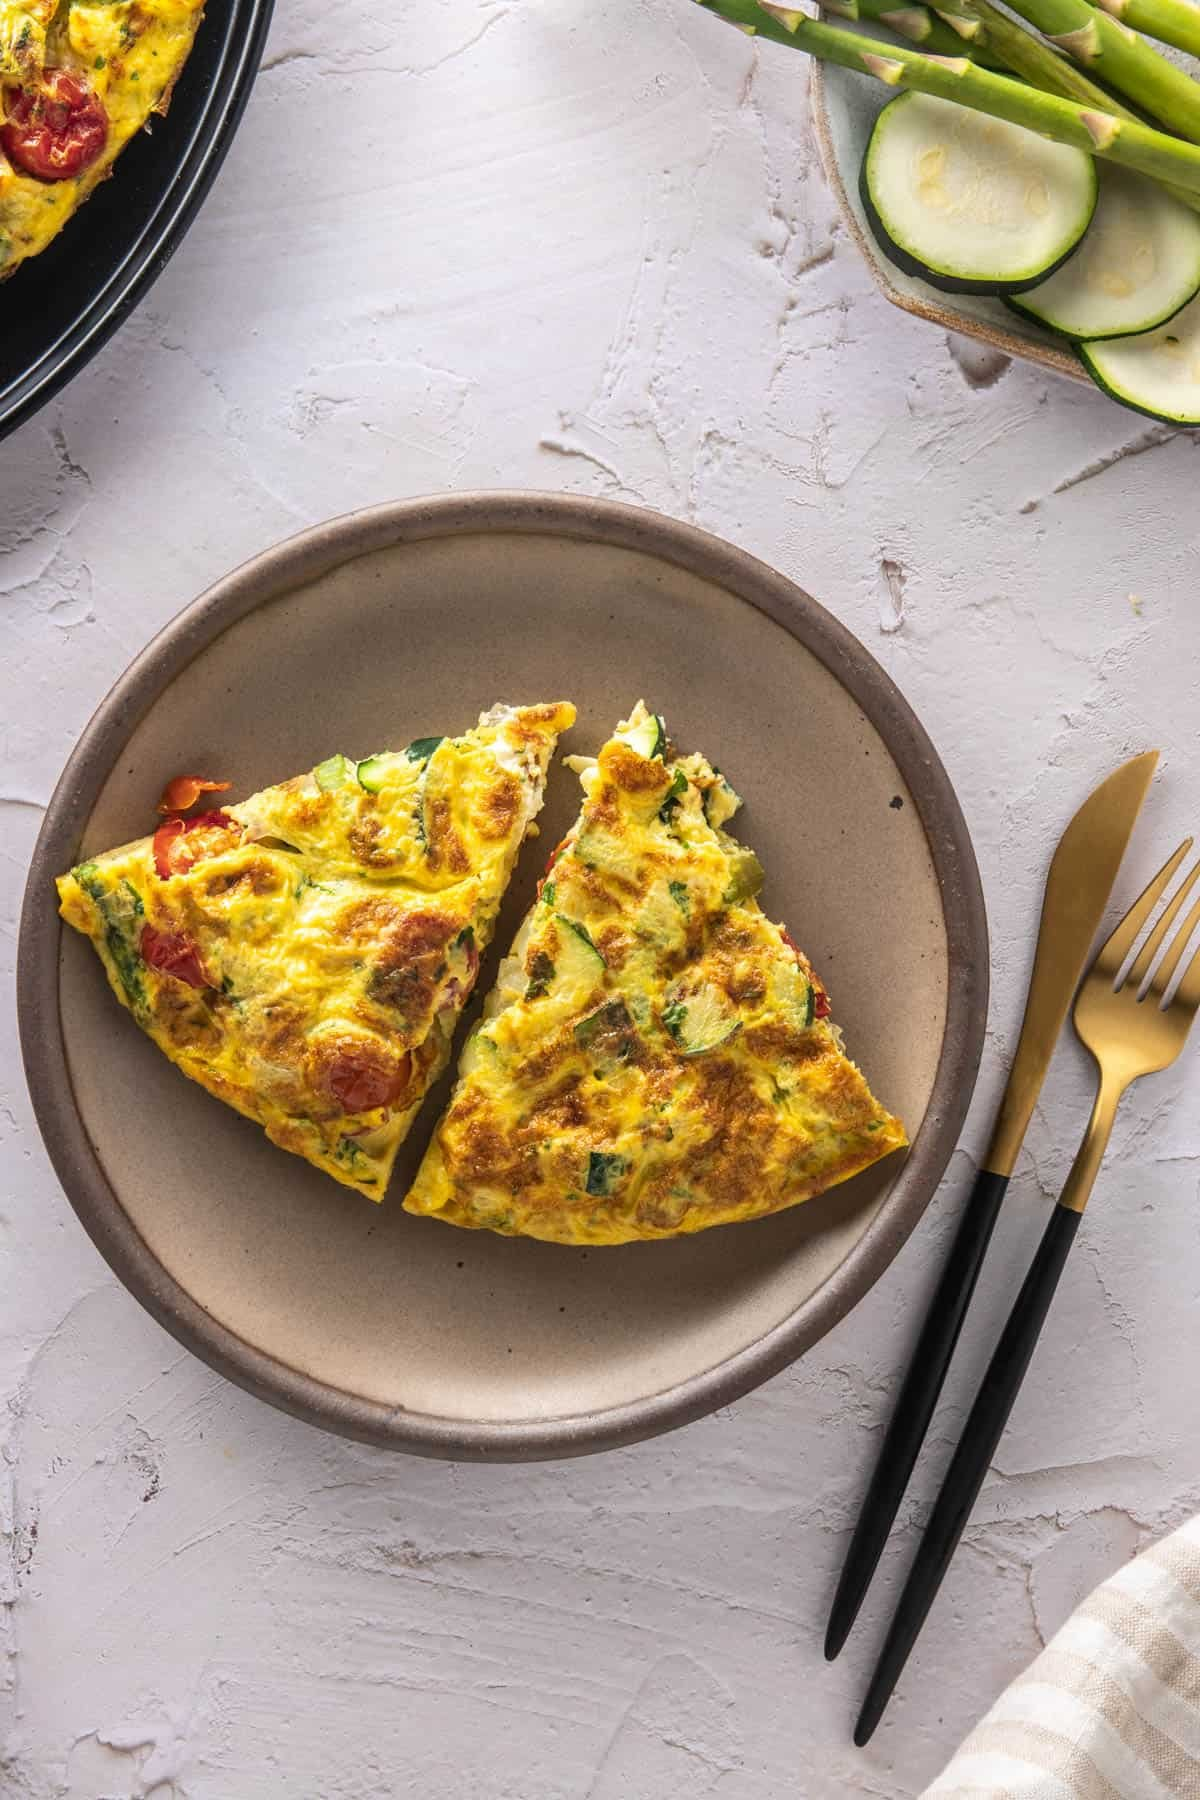 Plate with two slices of frittata and utensils next to it